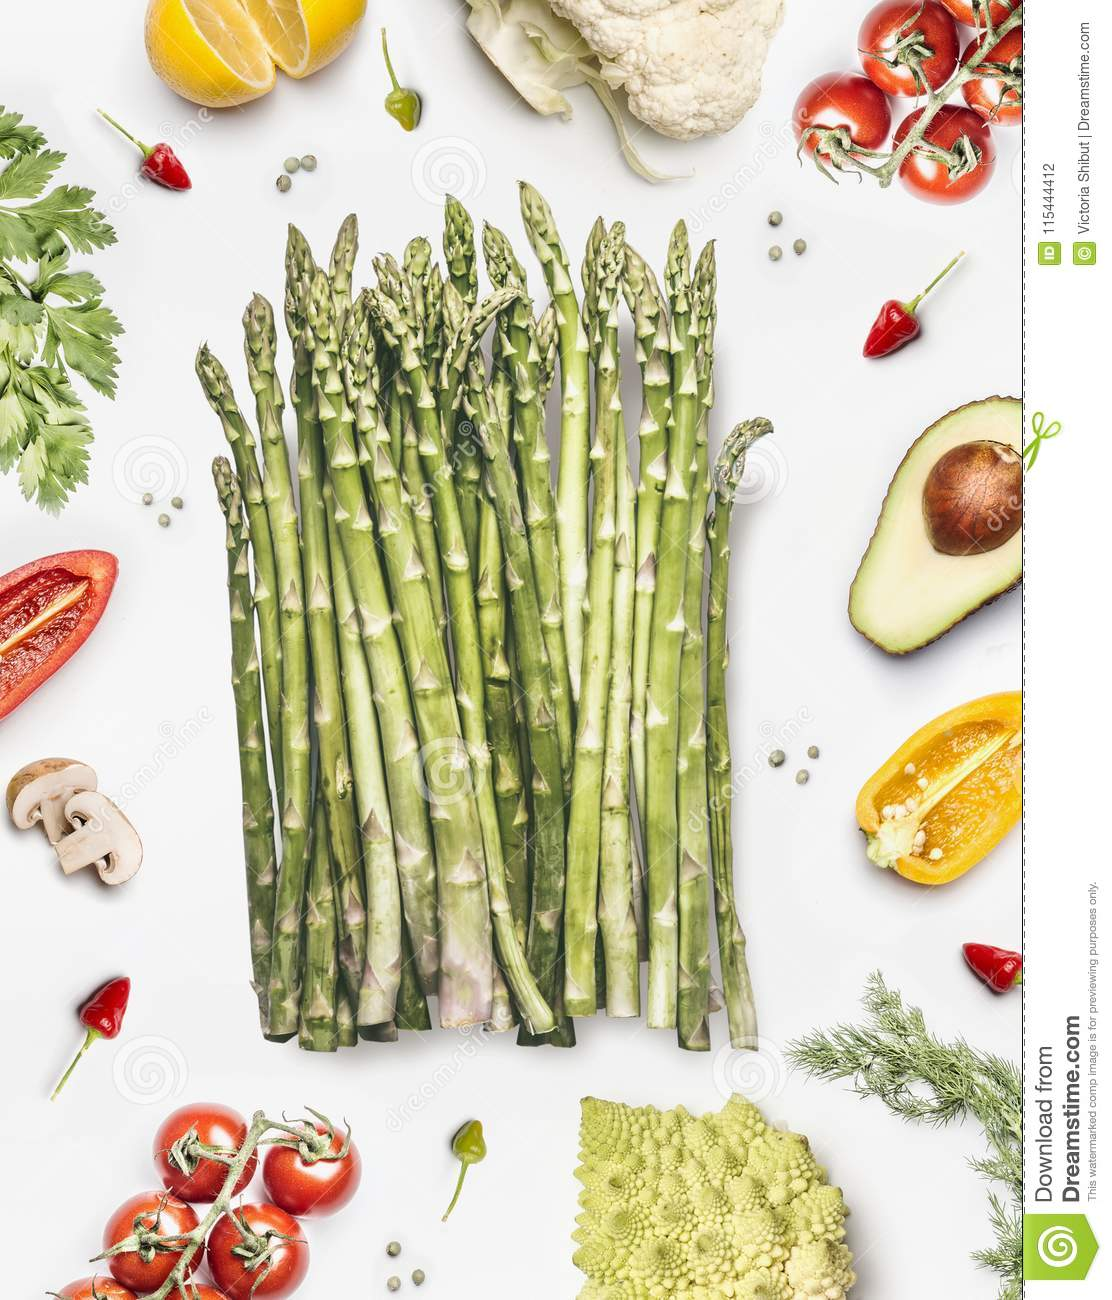 Green Asparagus Bunch With Vegetables Ingredients On White ...